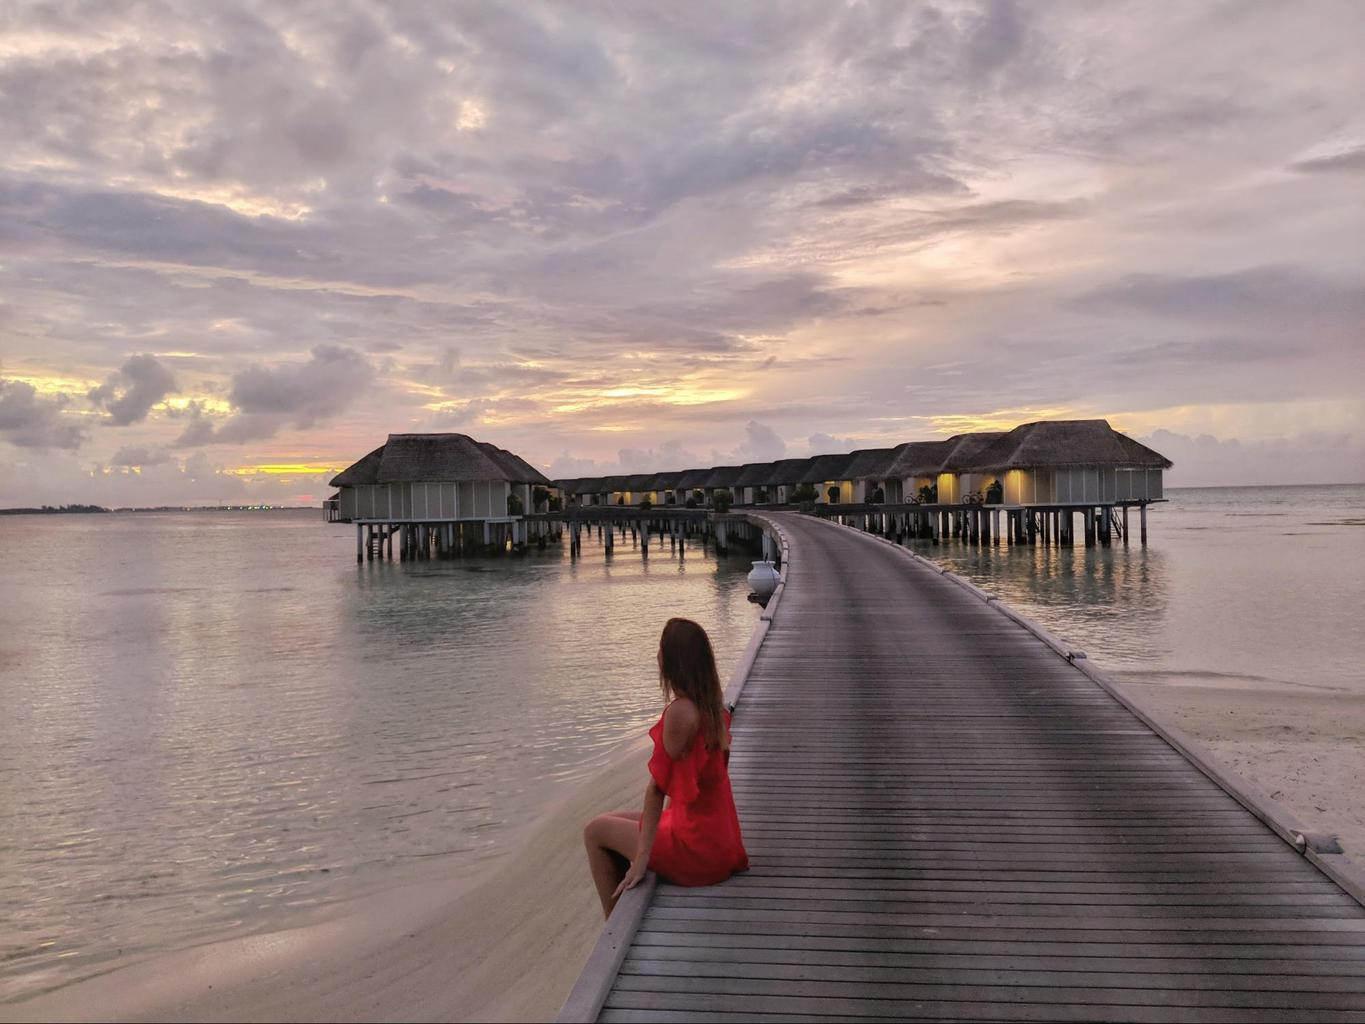 Sunset at LUX* Maldives